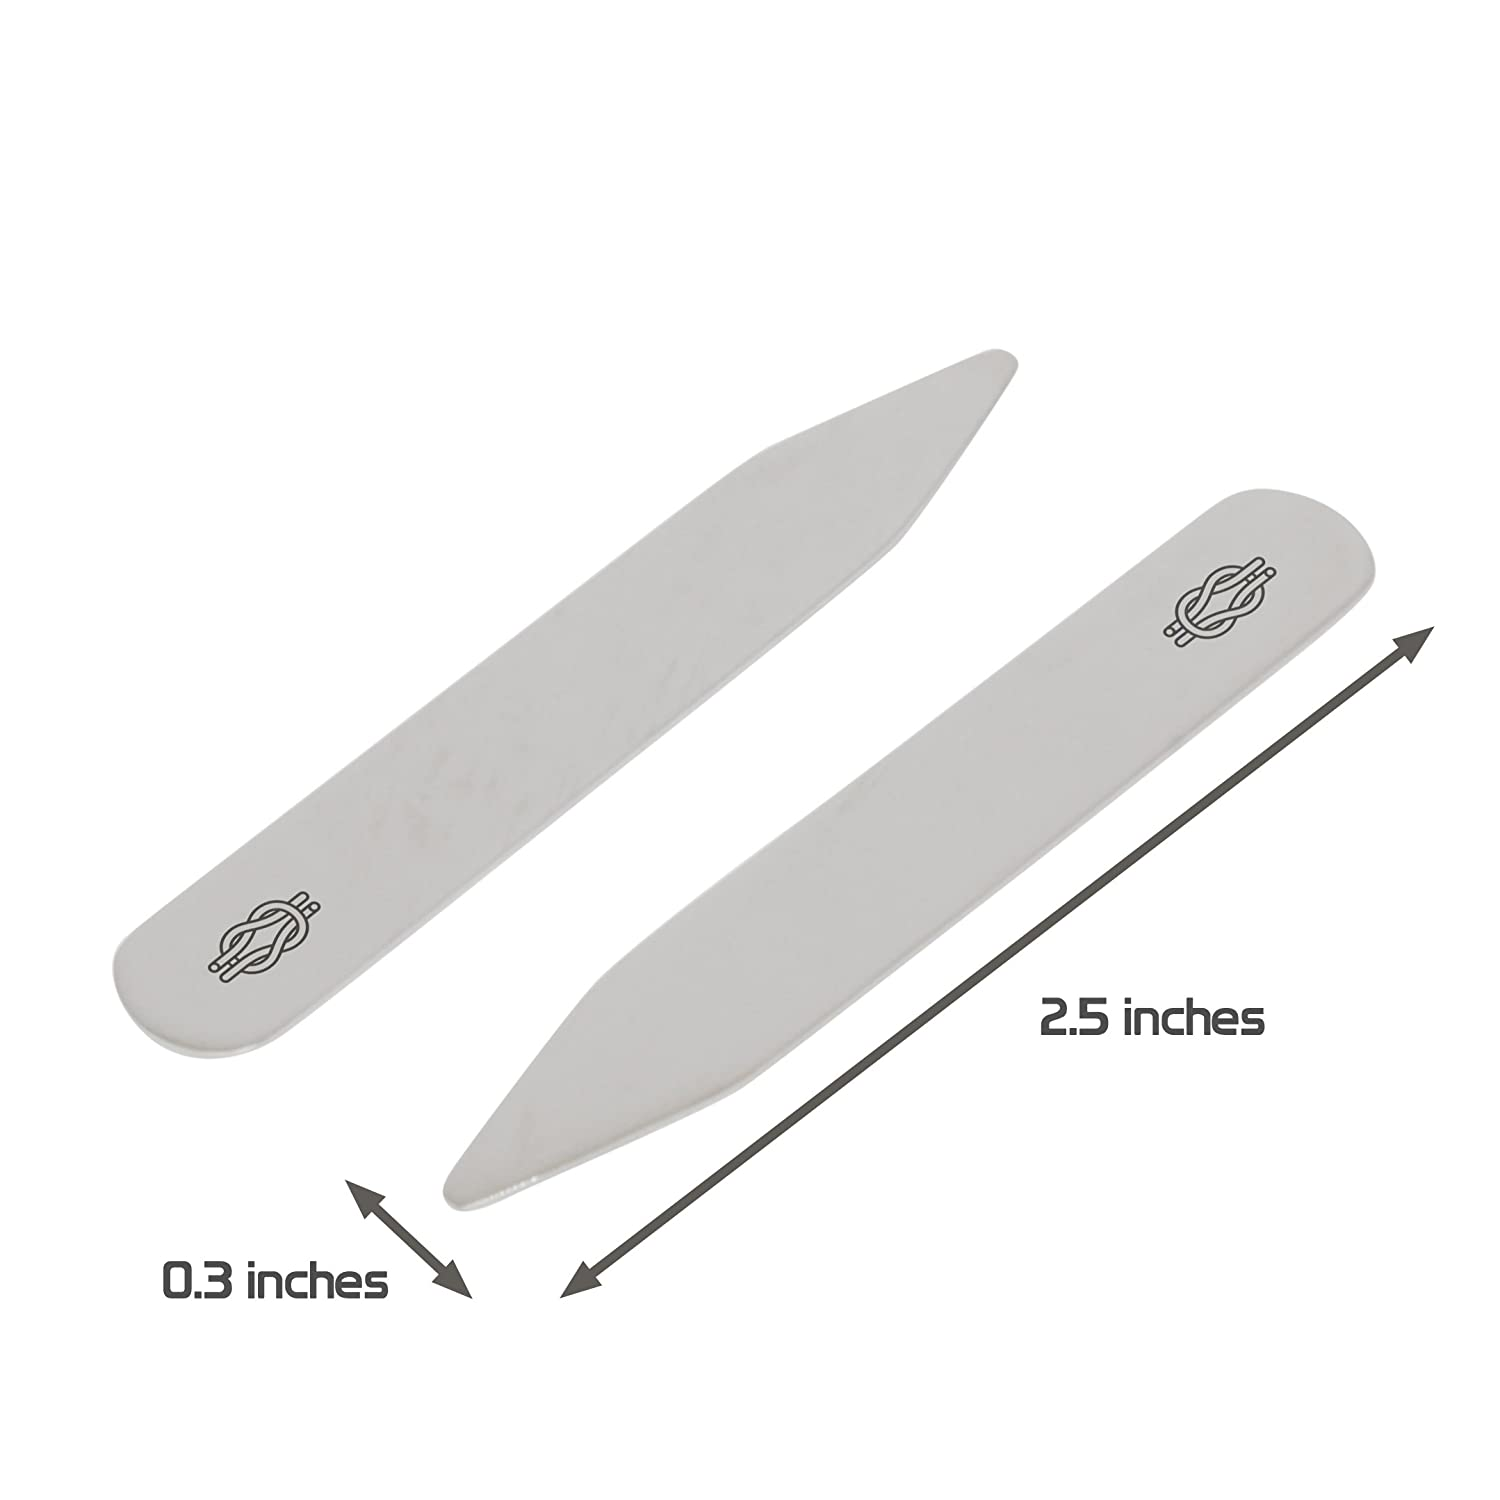 2.5 Inch Metal Collar Stiffeners MODERN GOODS SHOP Stainless Steel Collar Stays With Laser Engraved Knot Design Made In USA